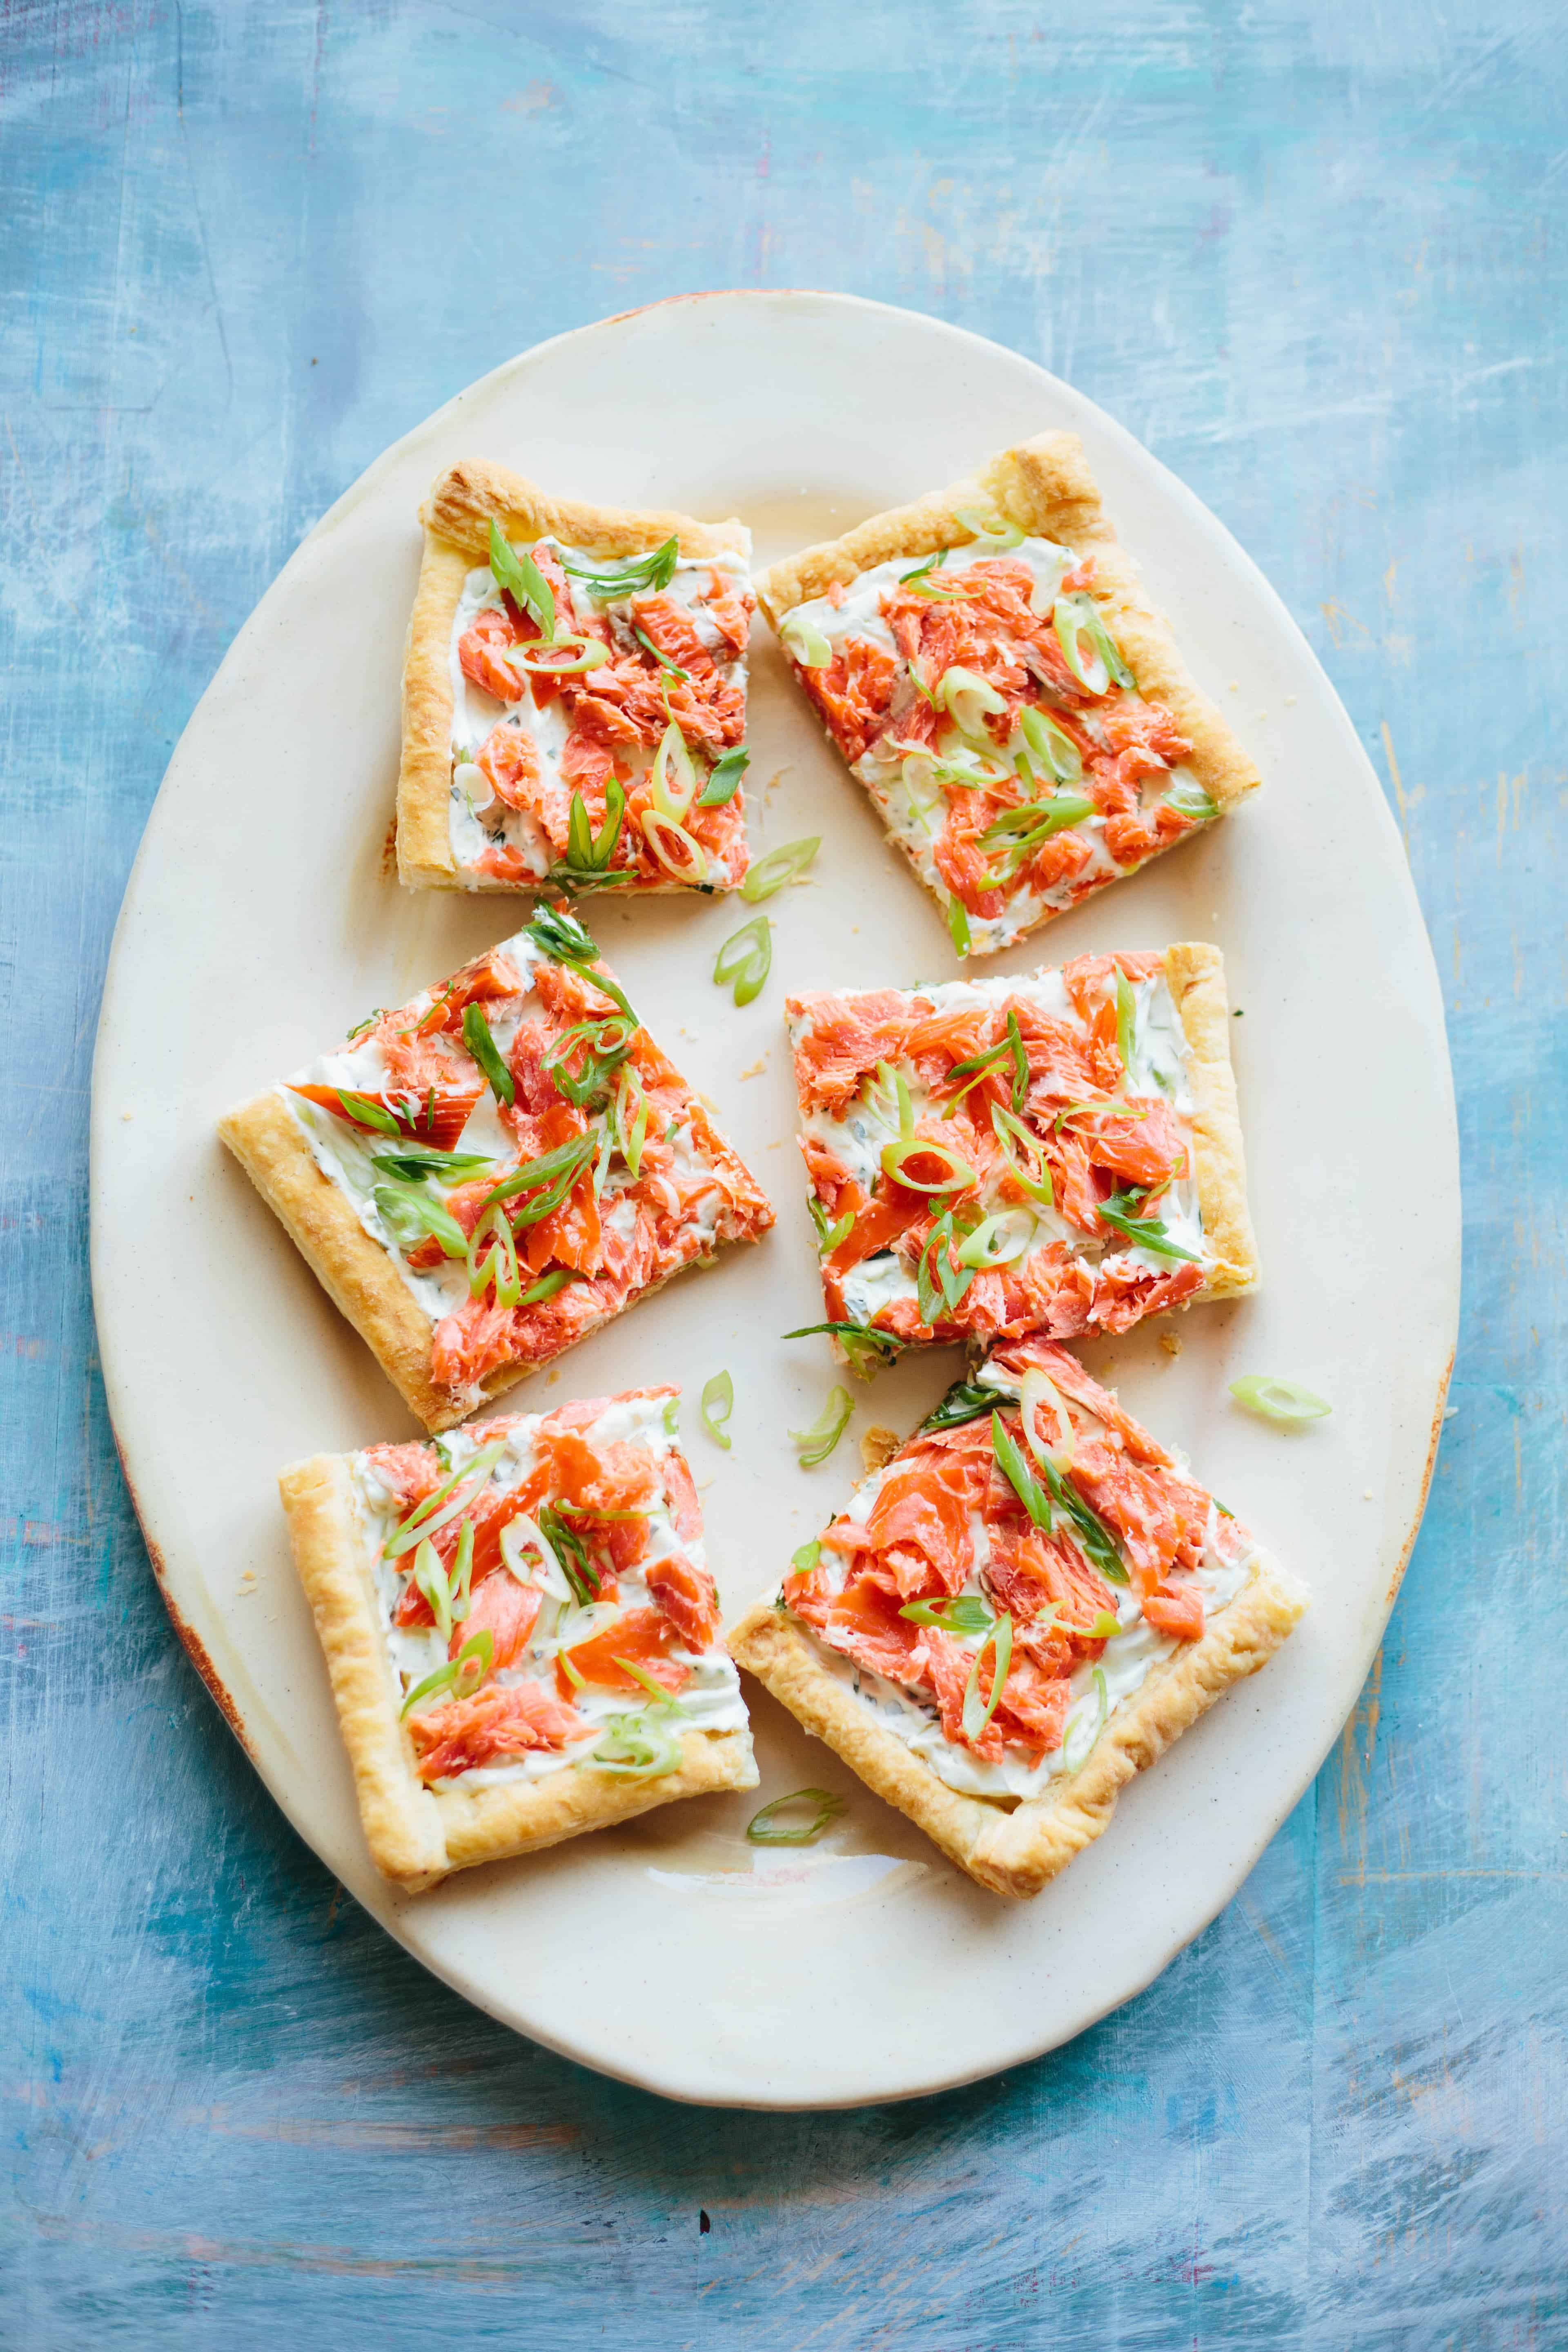 Easy Smoked Salmon Puff Pastry Tart | This simple recipe makes an easy entertaining appetizer, lunch or brunch! #smokedsalmon #puffpastry #tart #recipe #appetizer #brunch #lunch #wildsalmon | ColeyCooks.com